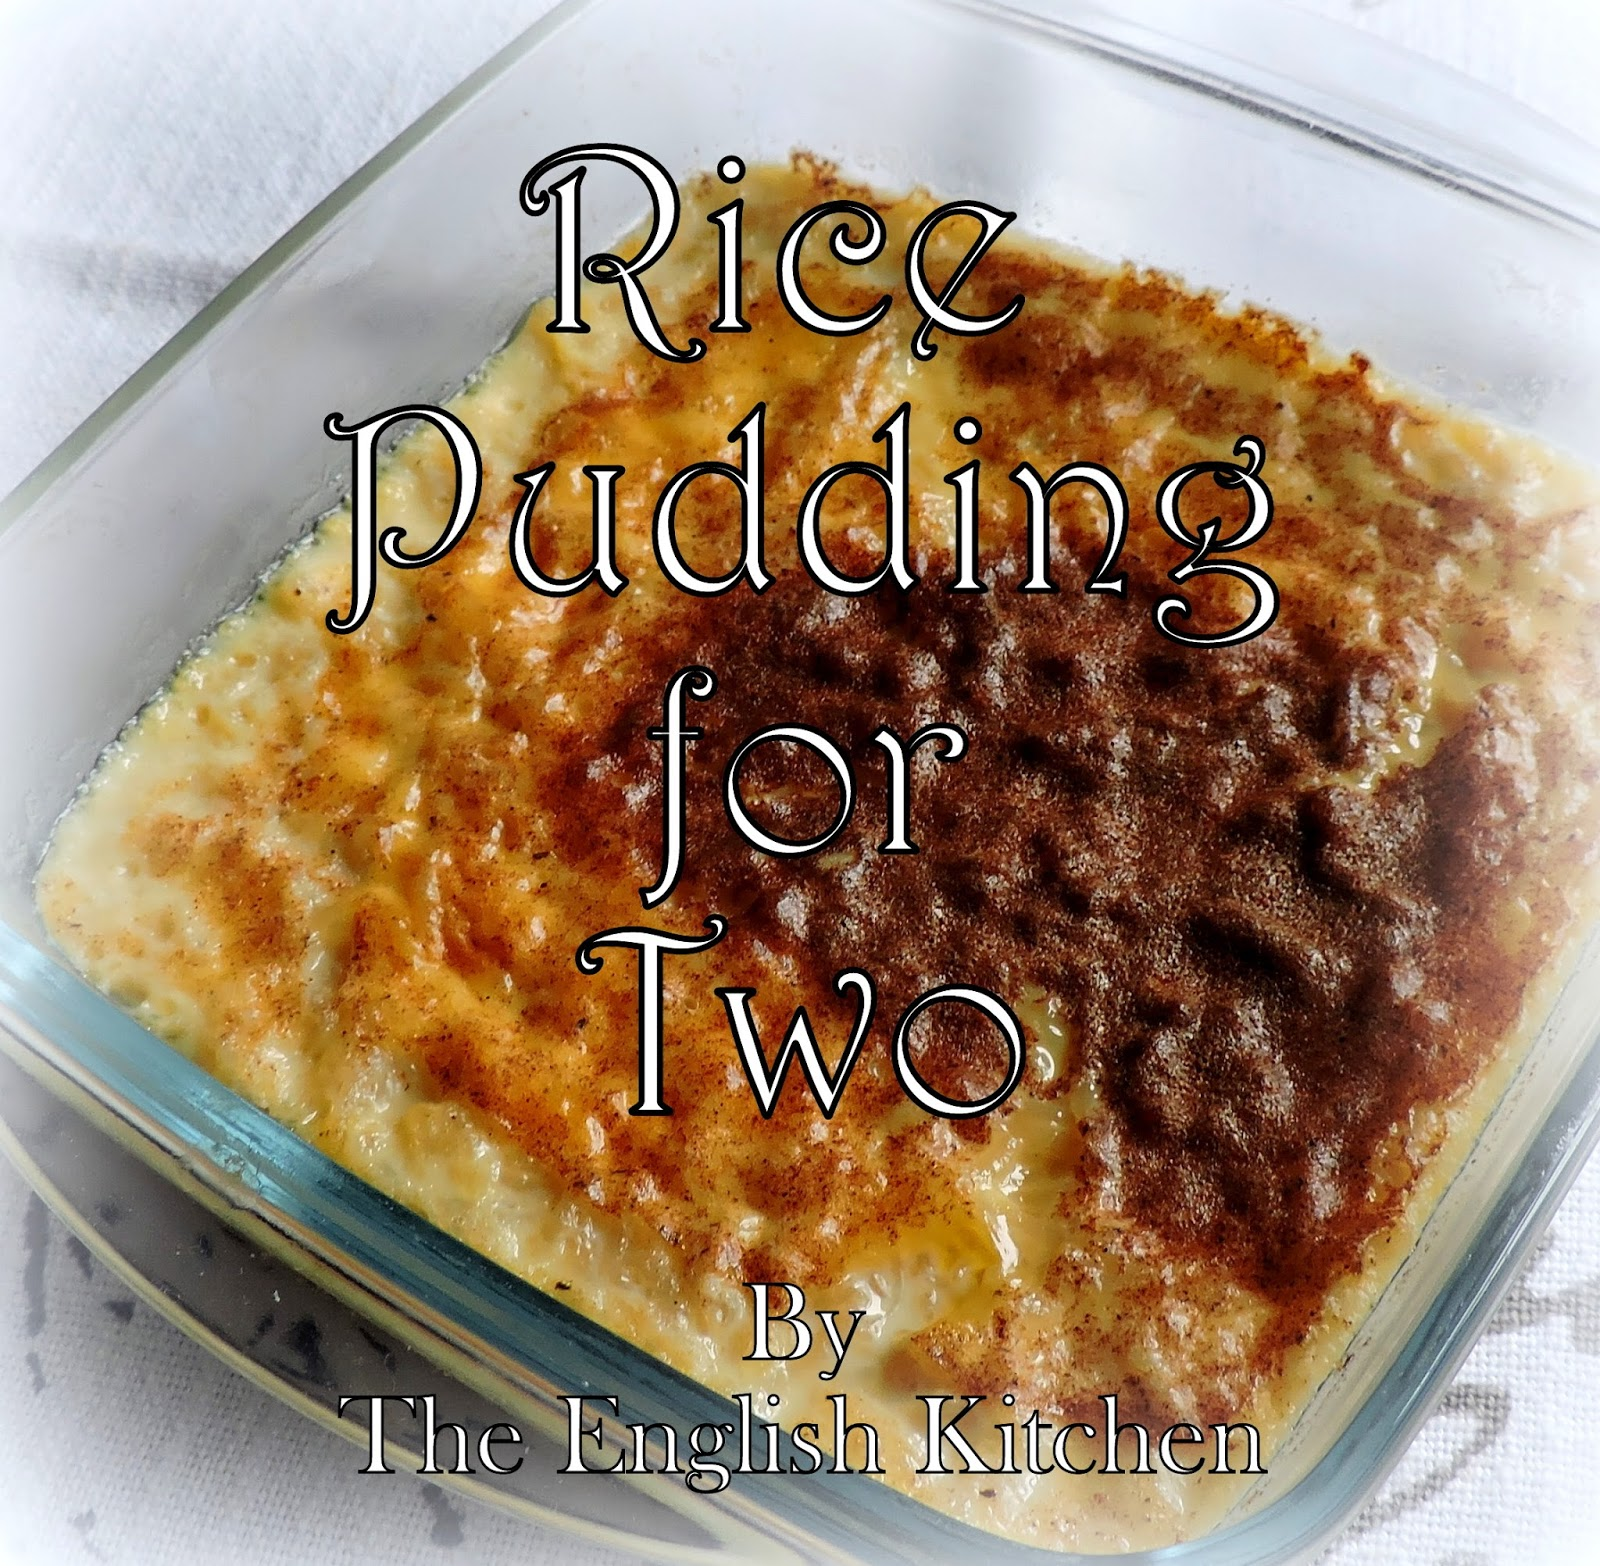 Old fashioned english puddings 23